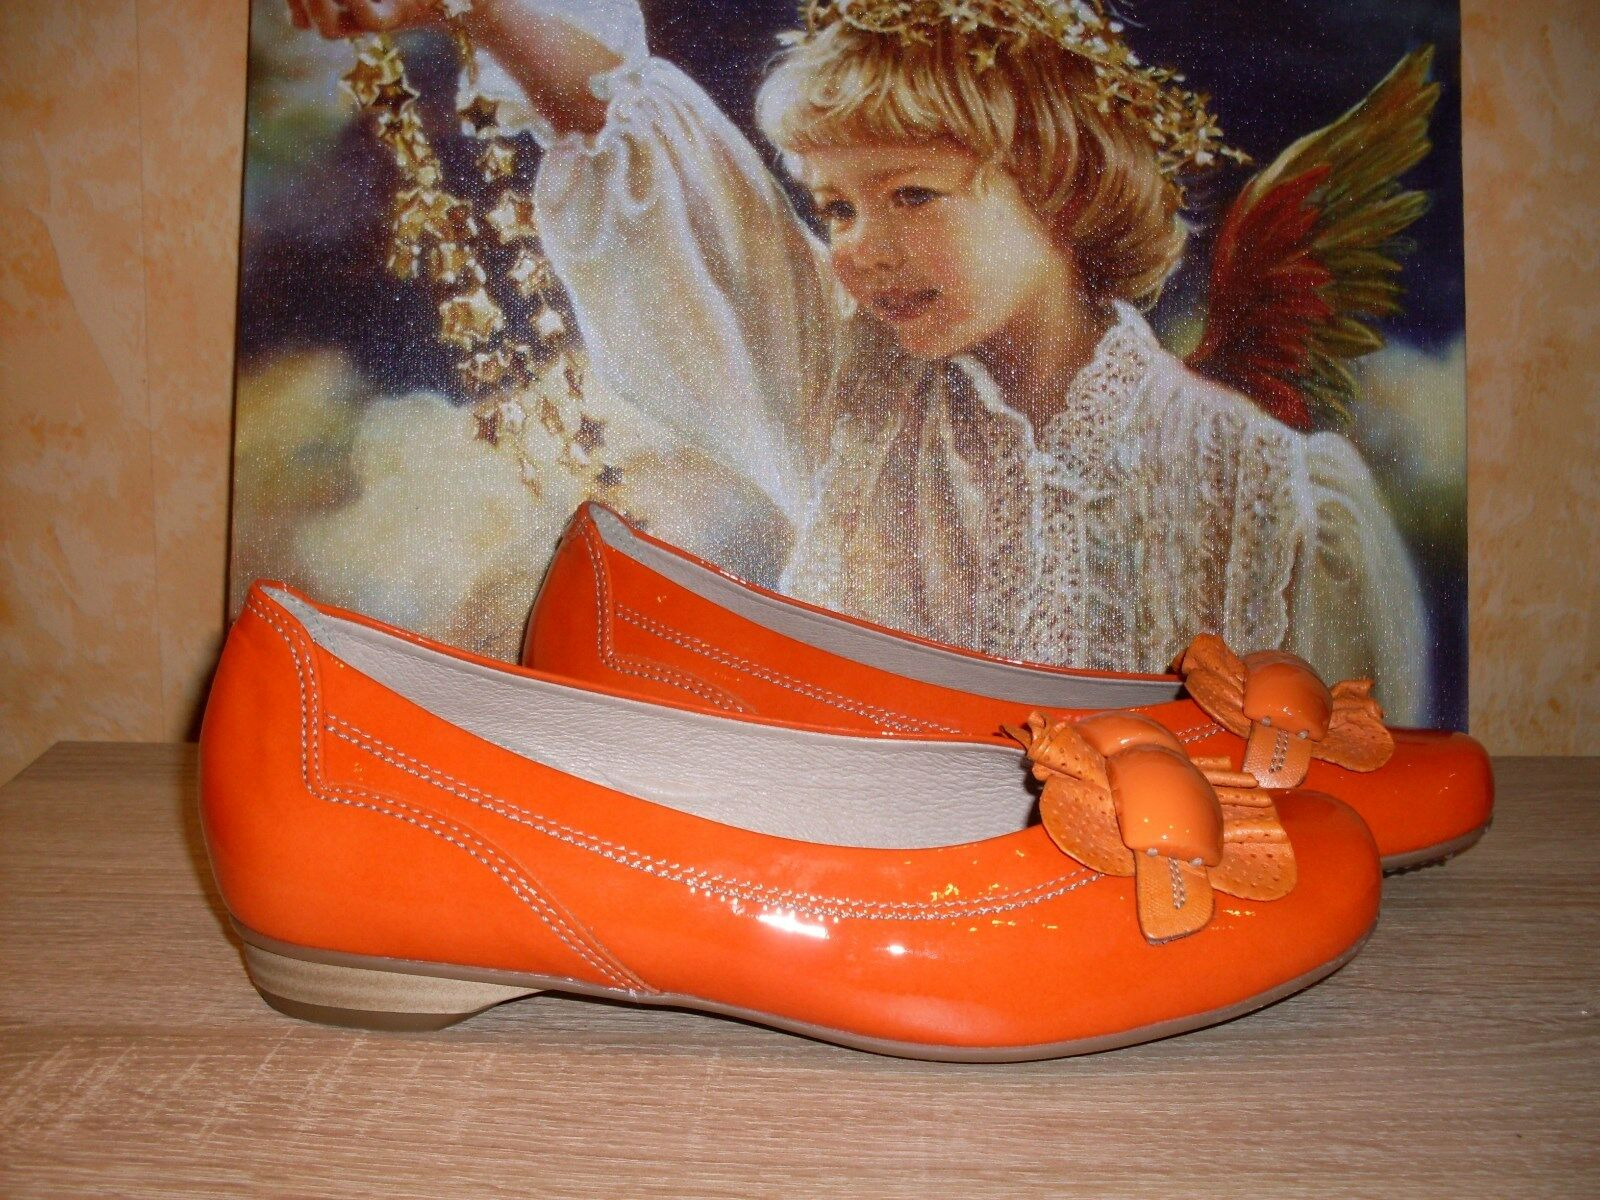 Bequeme Softwaves Ballerina Pumps NEU Gr. Gr. Gr. 44 in koralle (orange) Lack & Leder e54e99